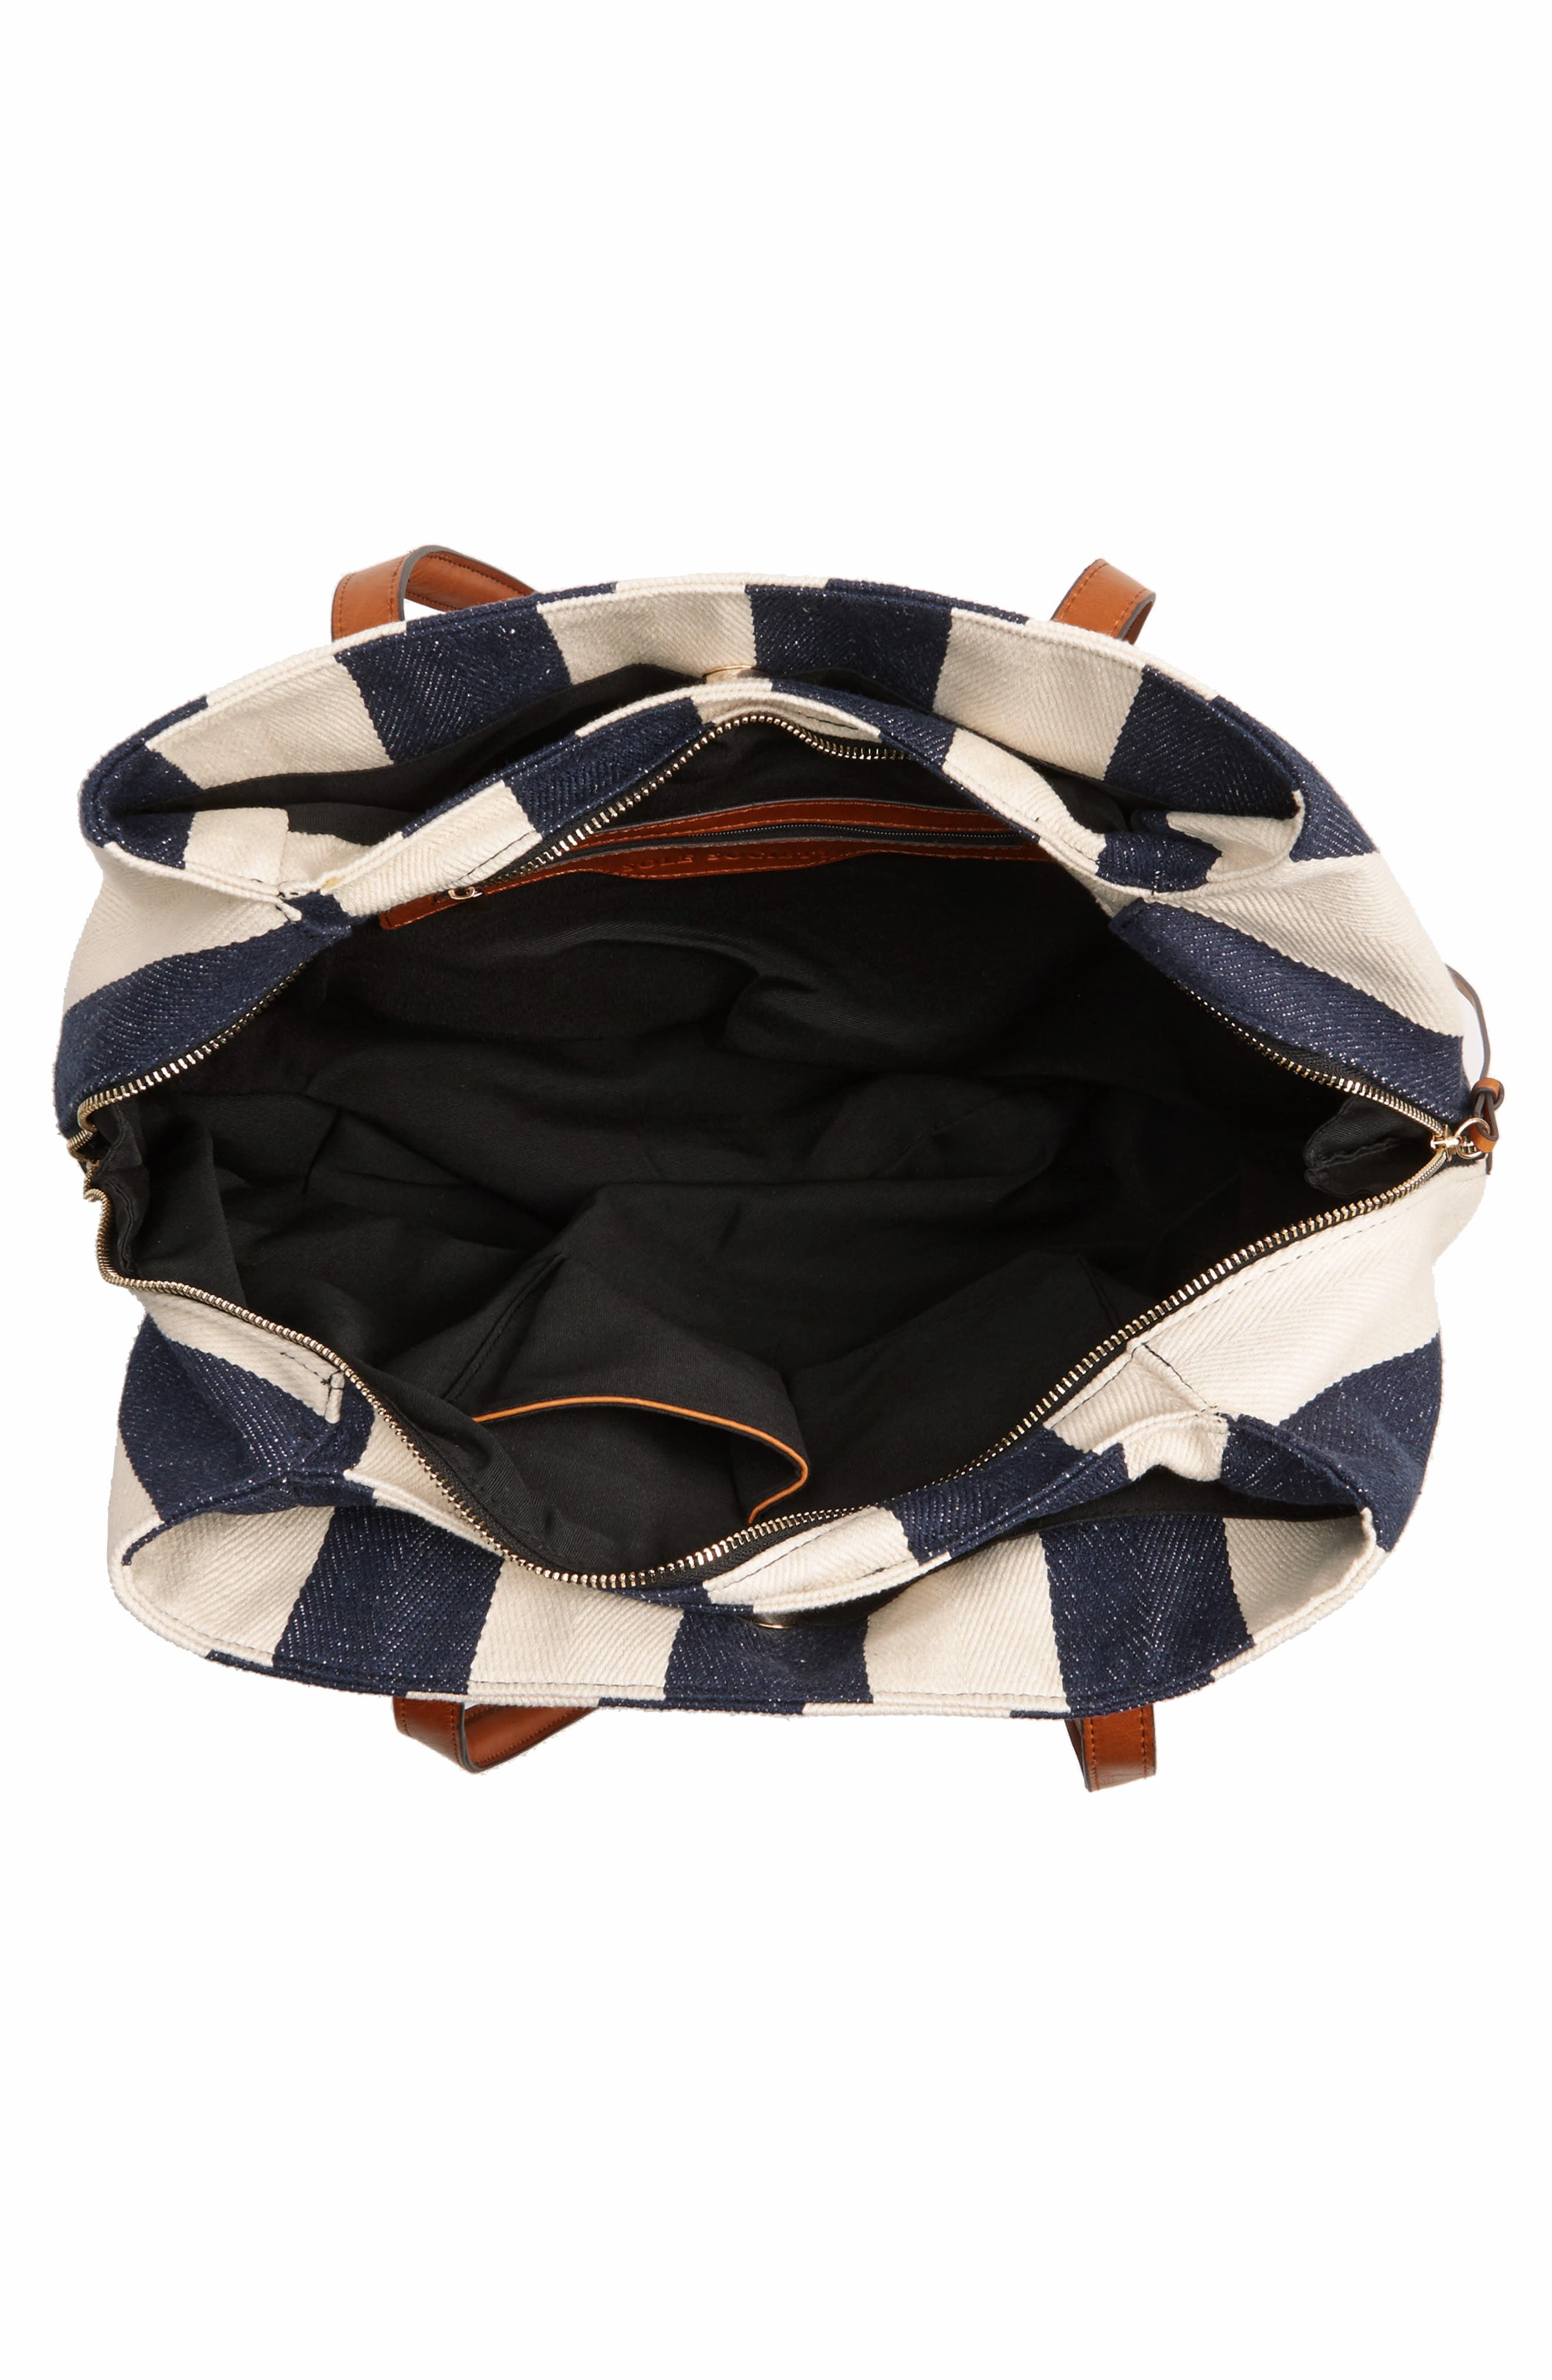 SOLE SOCIETY,                             'Oversize Millie' Stripe Print Tote,                             Alternate thumbnail 4, color,                             NAVY CREAM